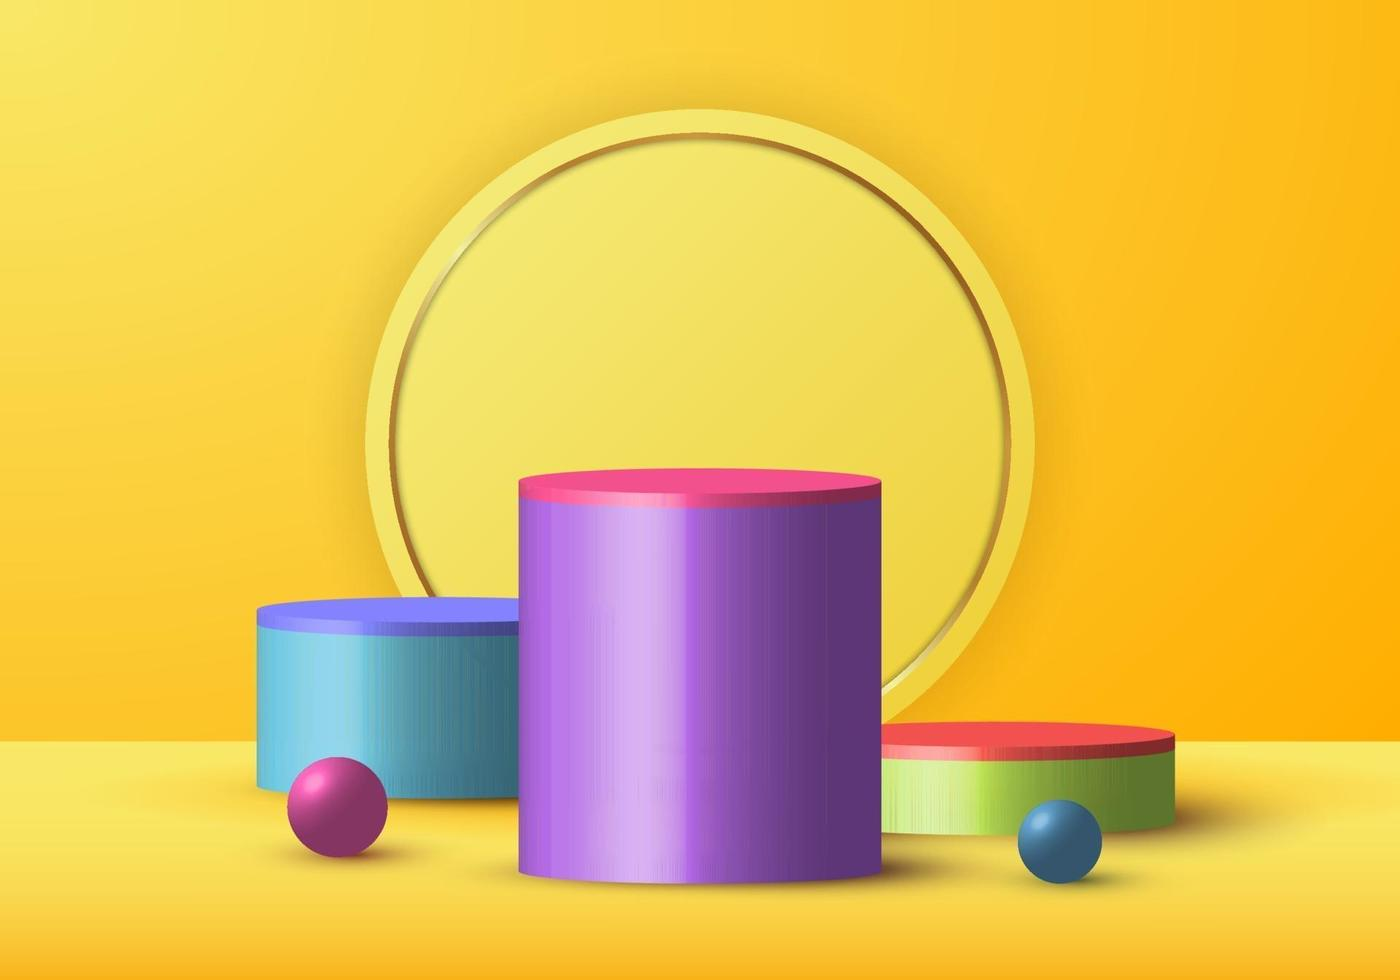 3D realistic yellow rendering and colorful geometric sphere. Cylinder studio decoration for display showcase and gold circle background vector